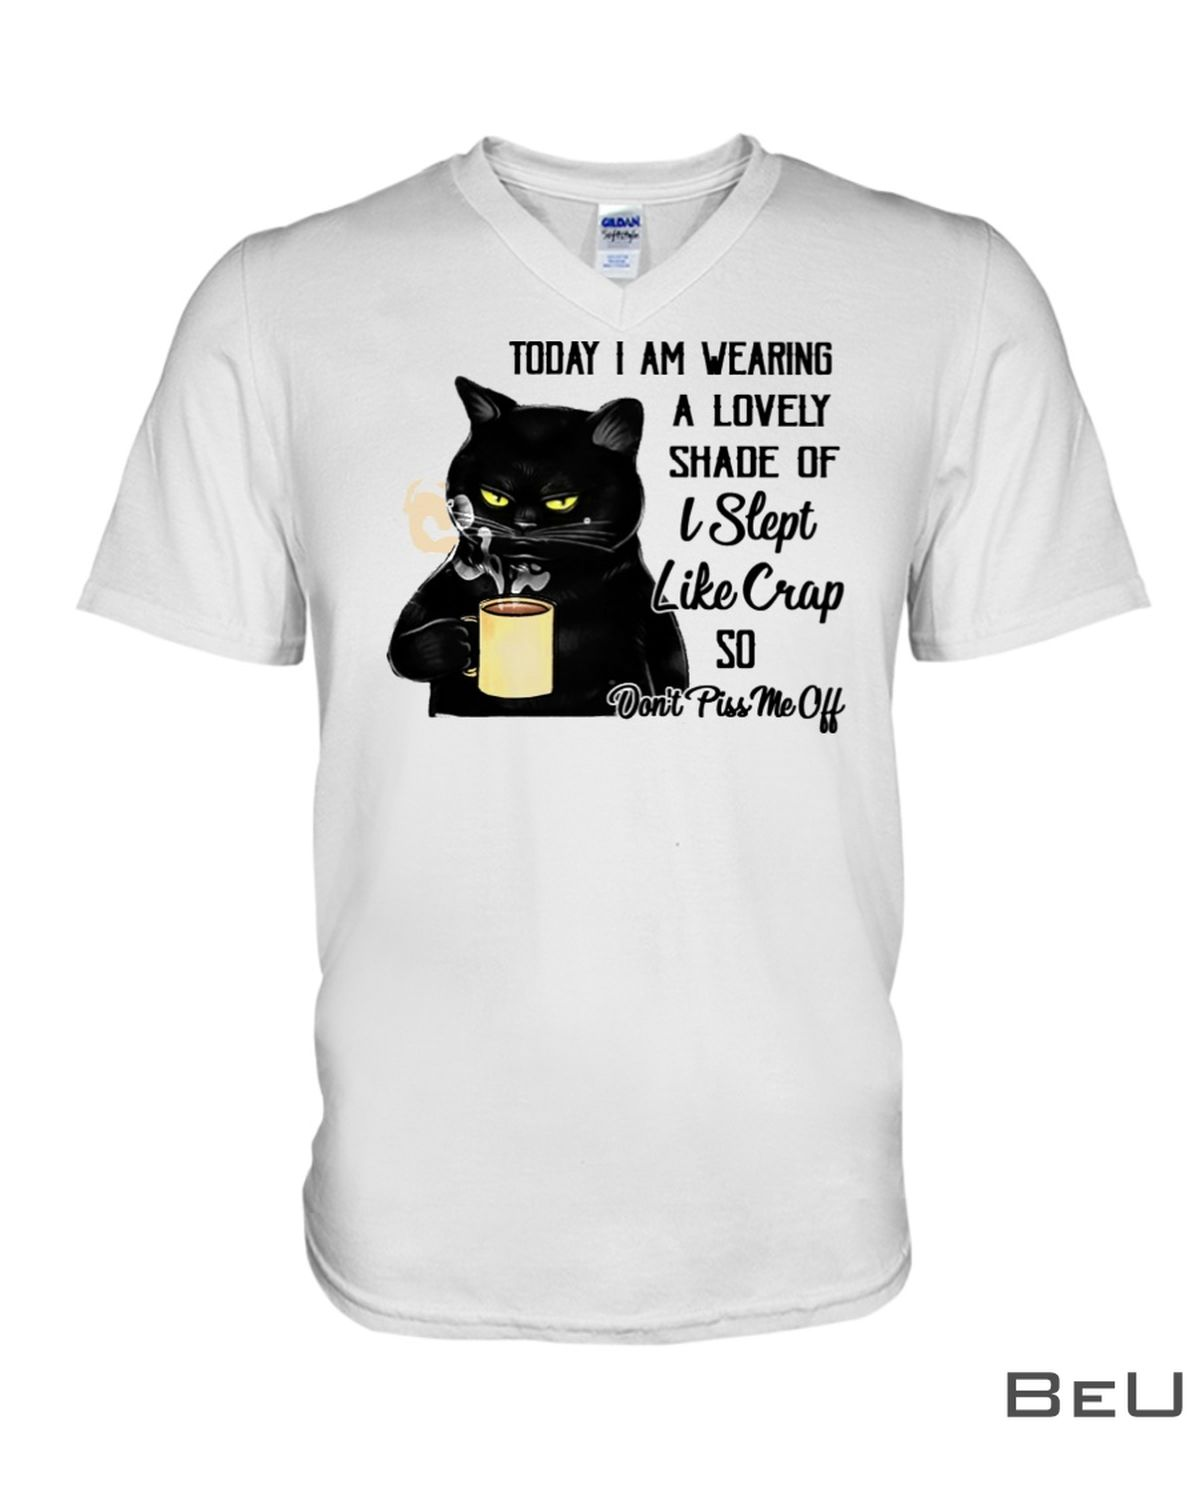 Cat oday I Am Wearing A Lovely Shade Of I Slept Like Crap So Don't PissMe Off Shirtz